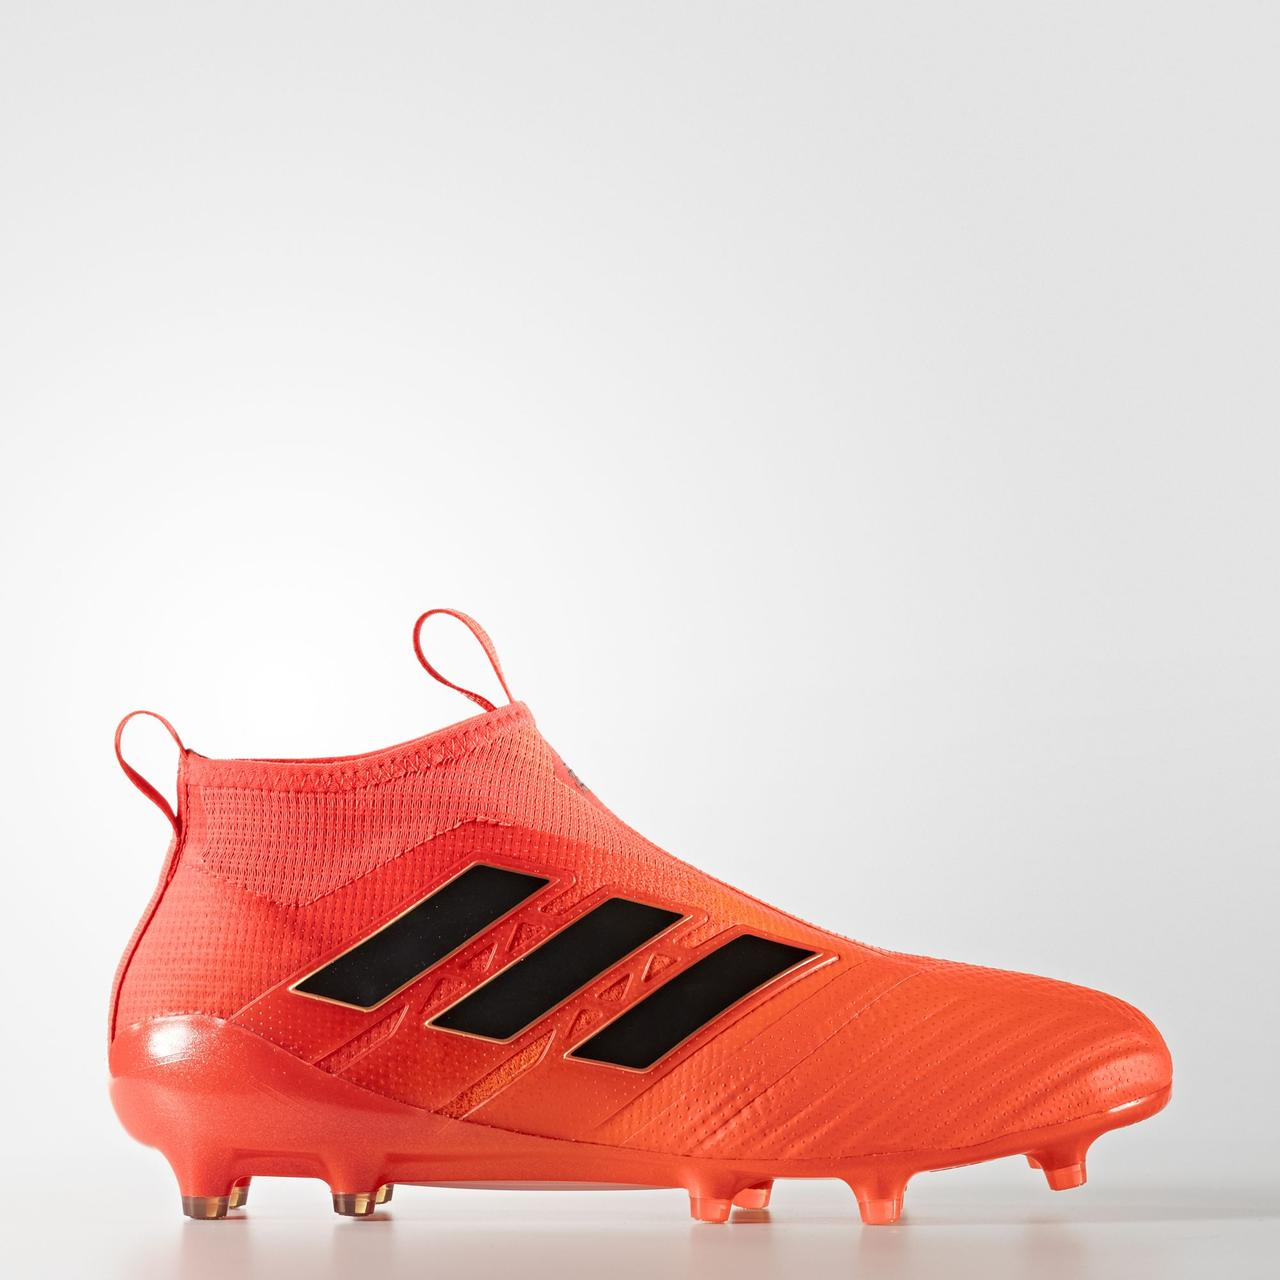 Футбольные бутсы Adidas Performance Ace 17 + Purecontrol FG AG (Артикул   BY2457) abda1748f1371